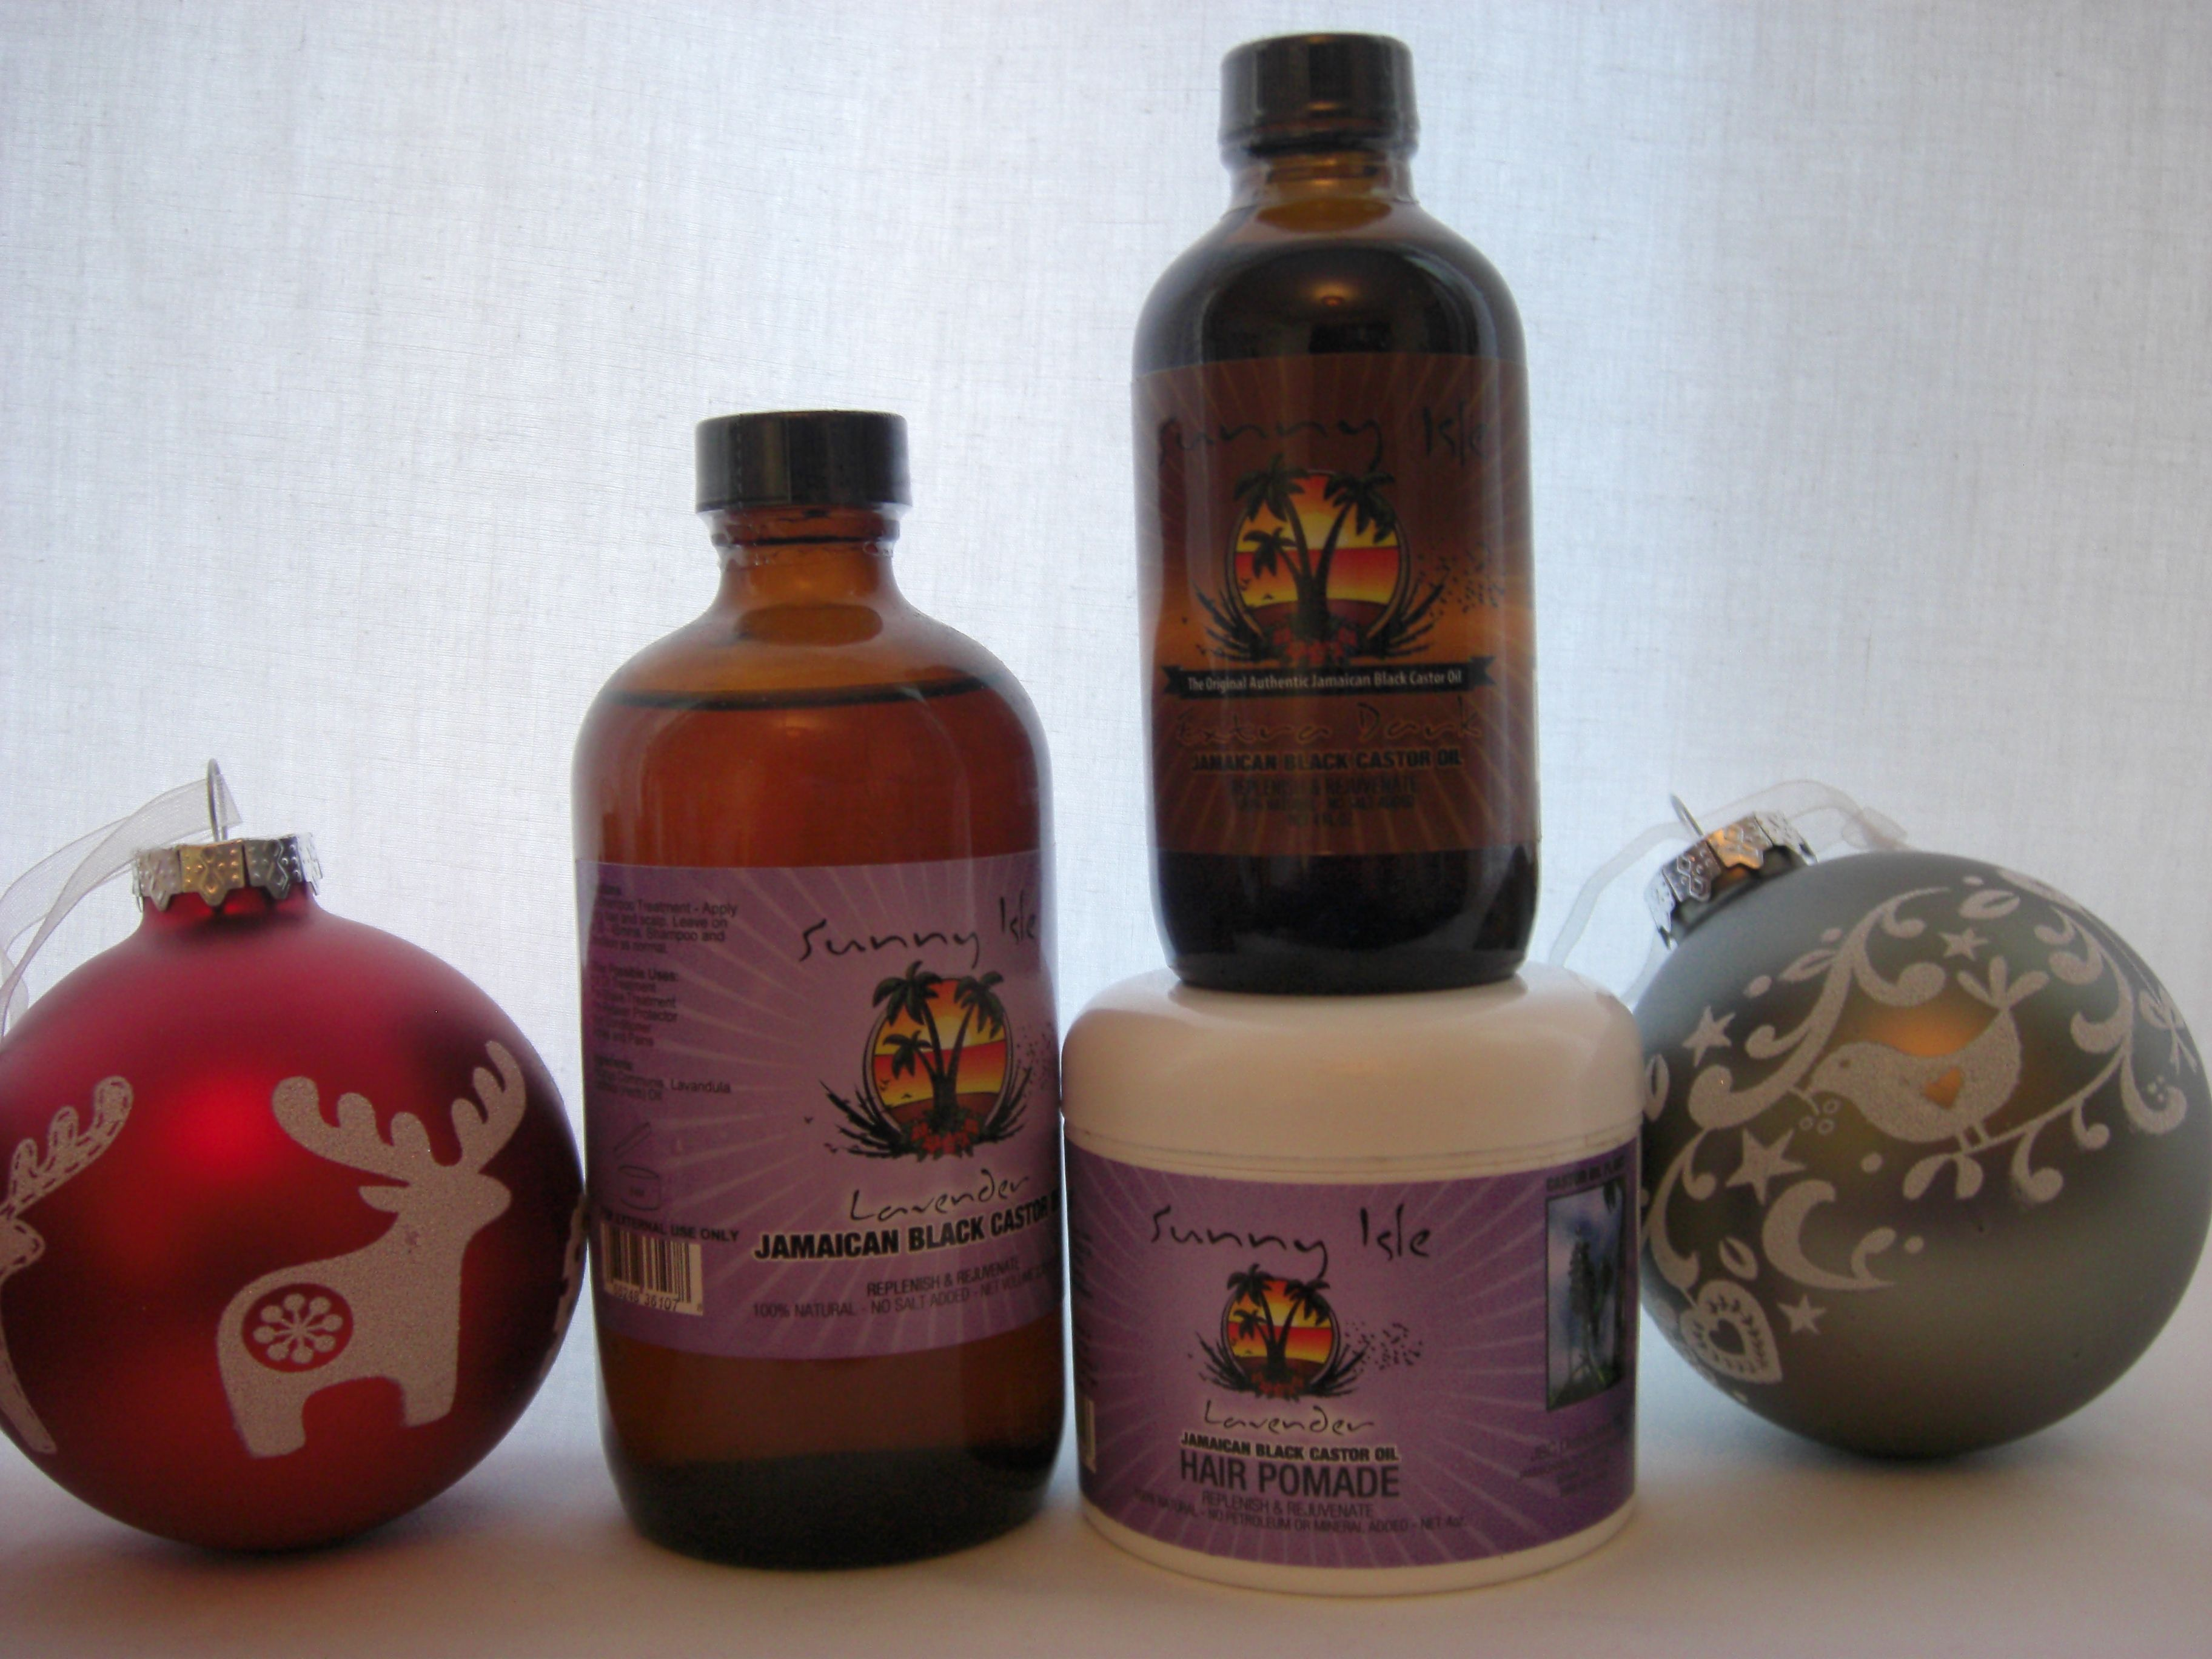 sunny isle products at afrodeity http://store.afrodeity.co.uk